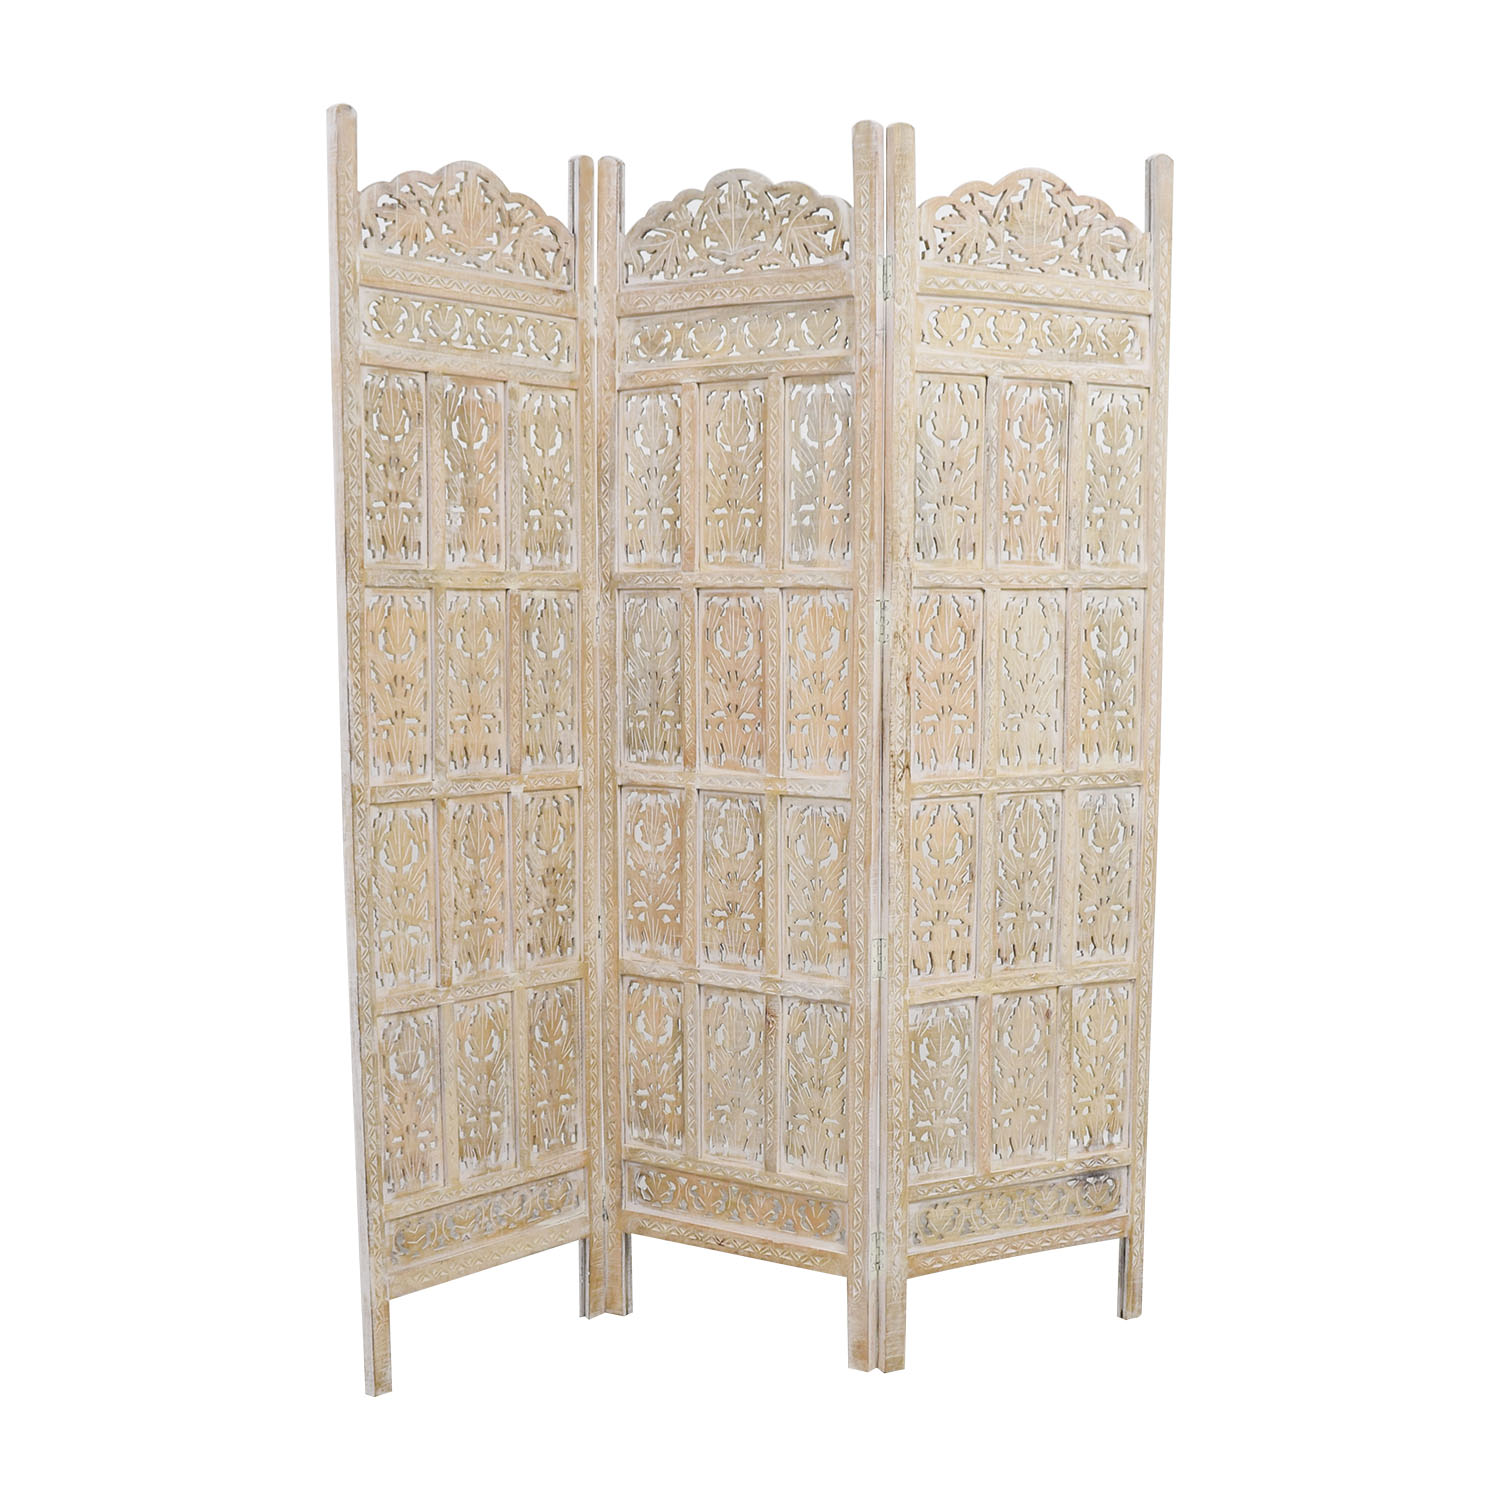 Ornate Screen Divider